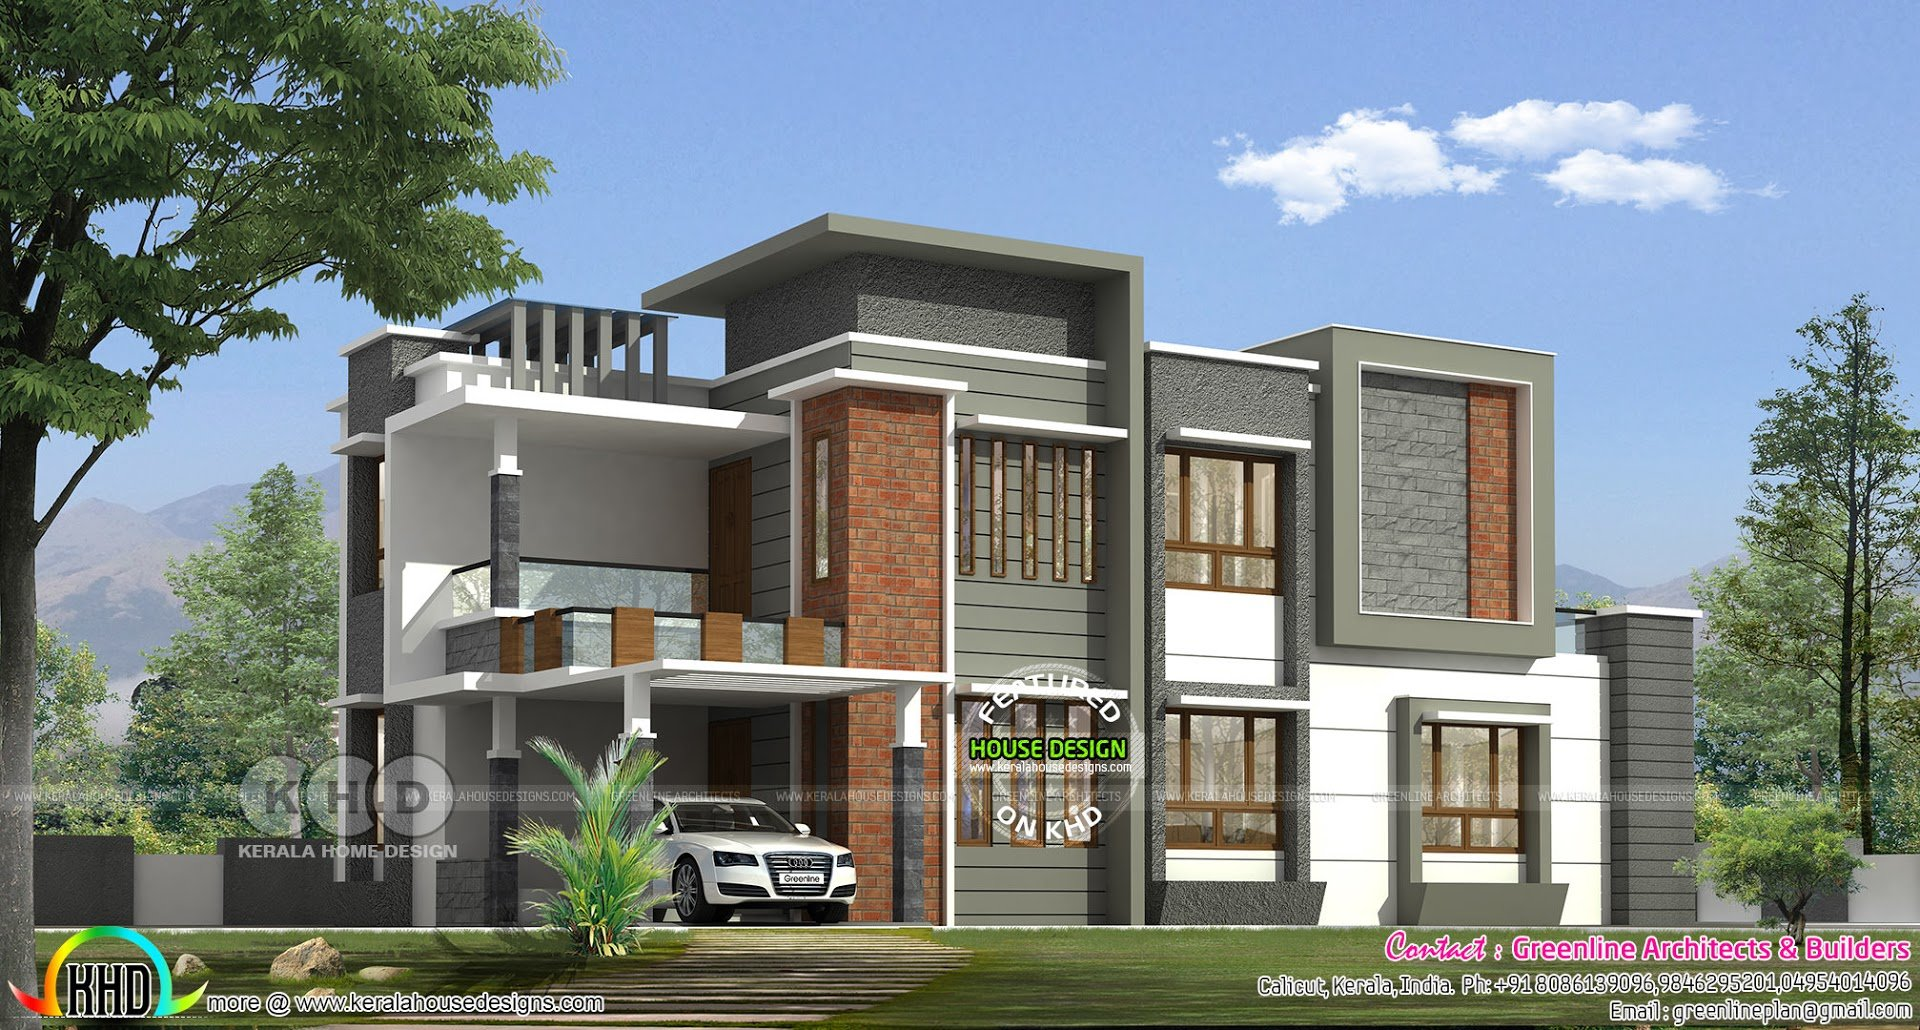 Best Kerala Home Design And Floor Plans With Pictures